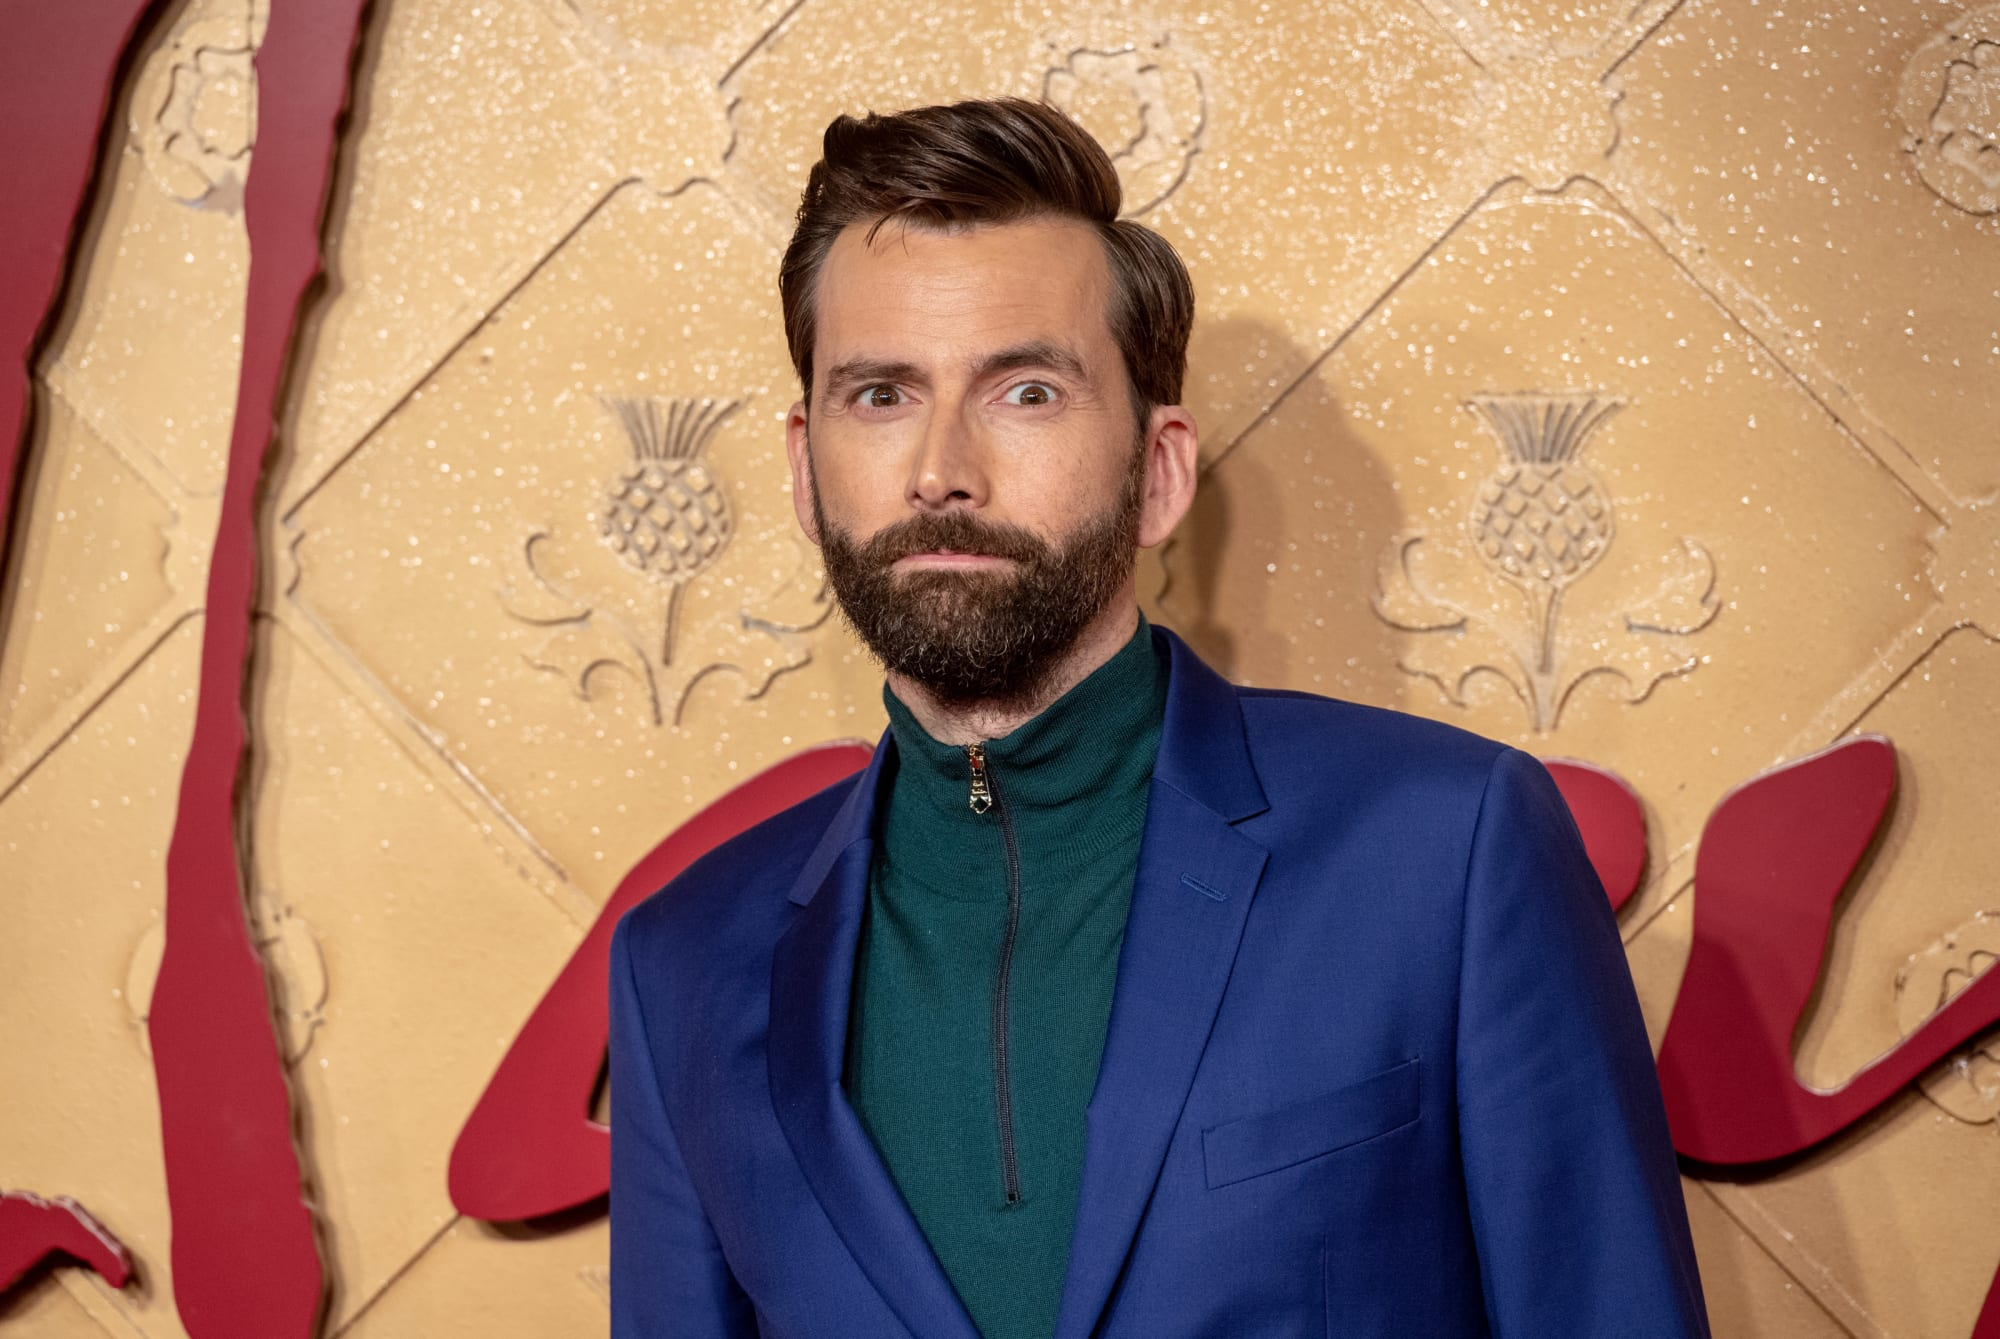 The Batman: David Tennant wows as The Riddler in stunning image